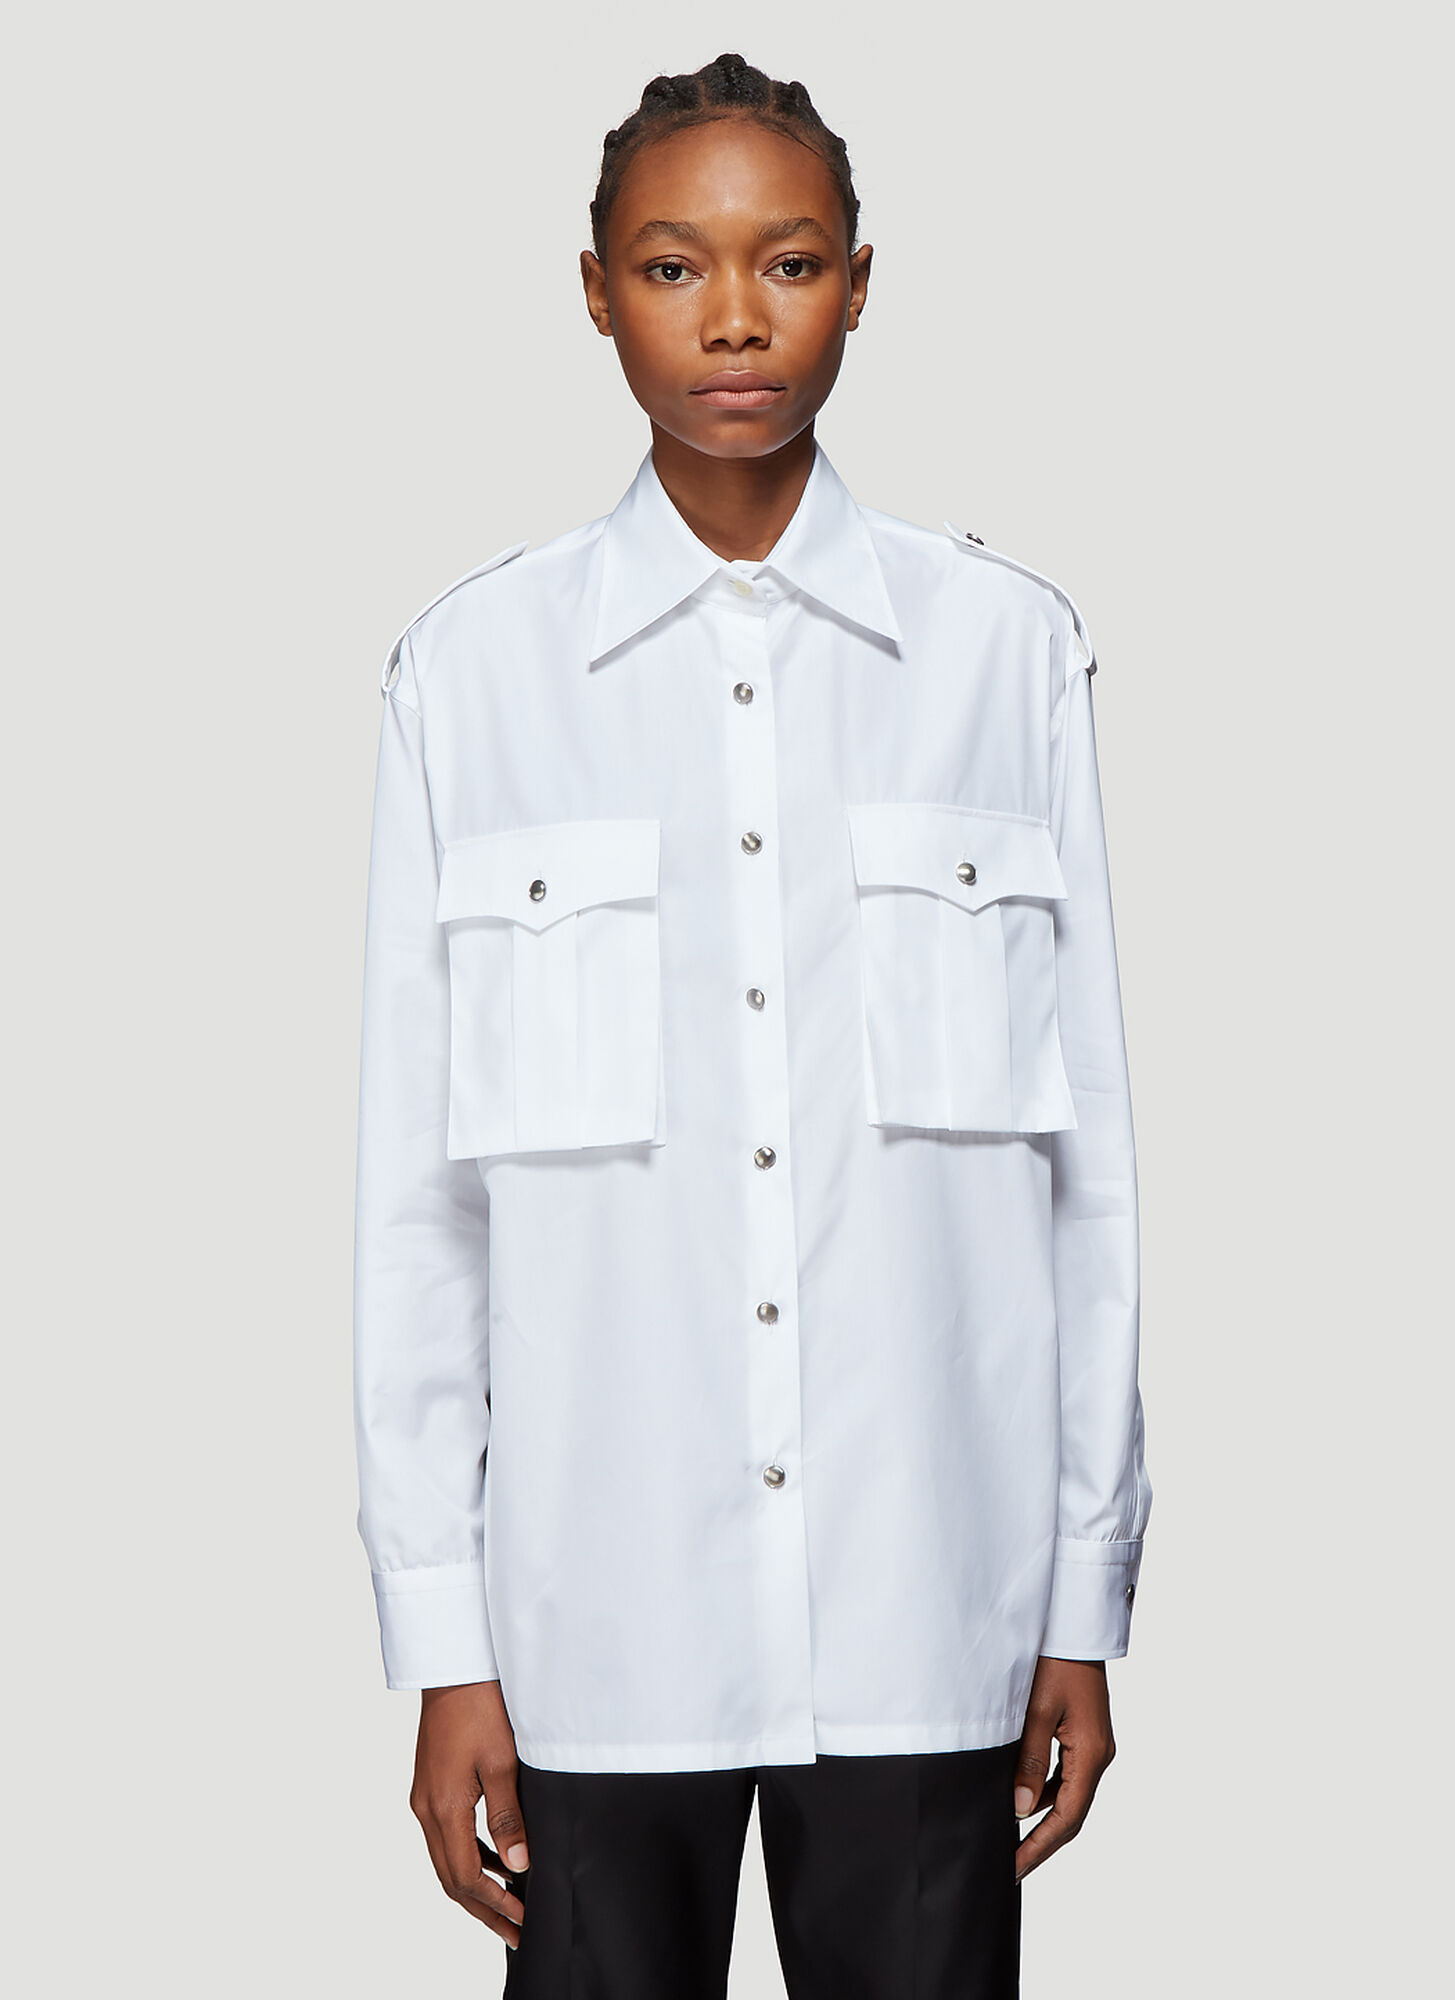 Prada Pocket Shirt in White